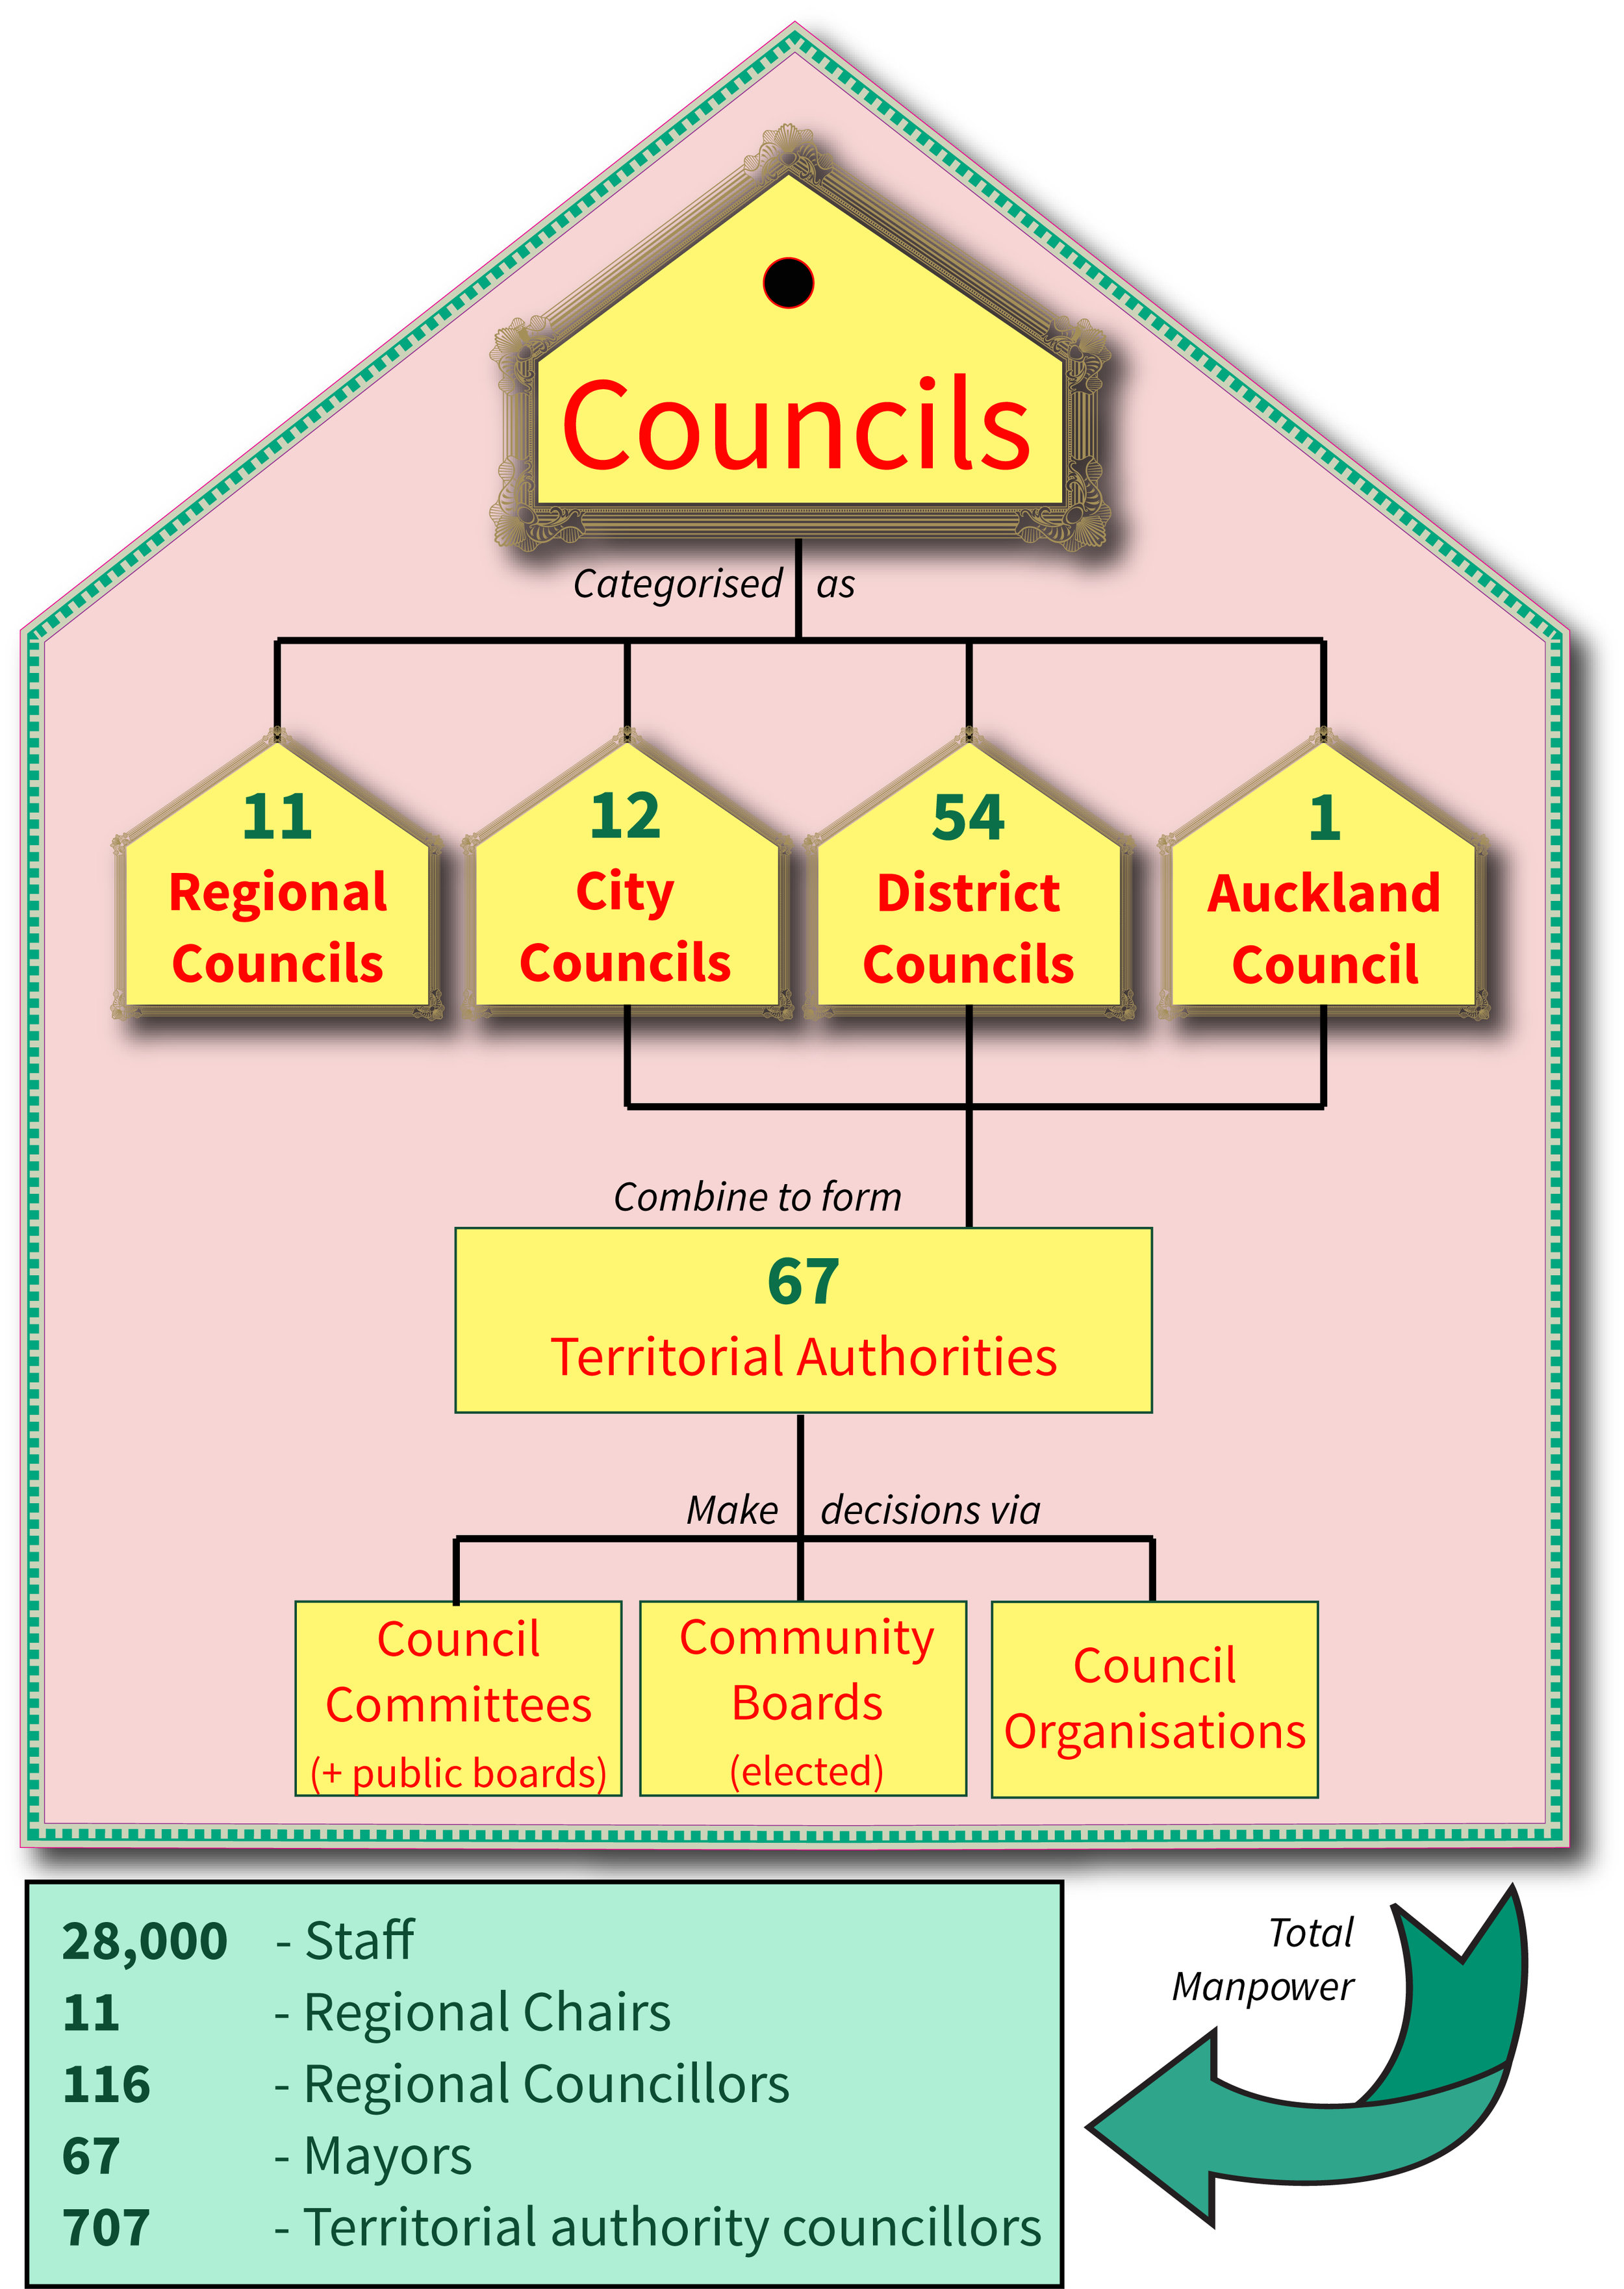 Info: All about Local Government in New Zealand                                                                                     - All information in this article and infographic is courtesy www.localcouncils.govt.nz.